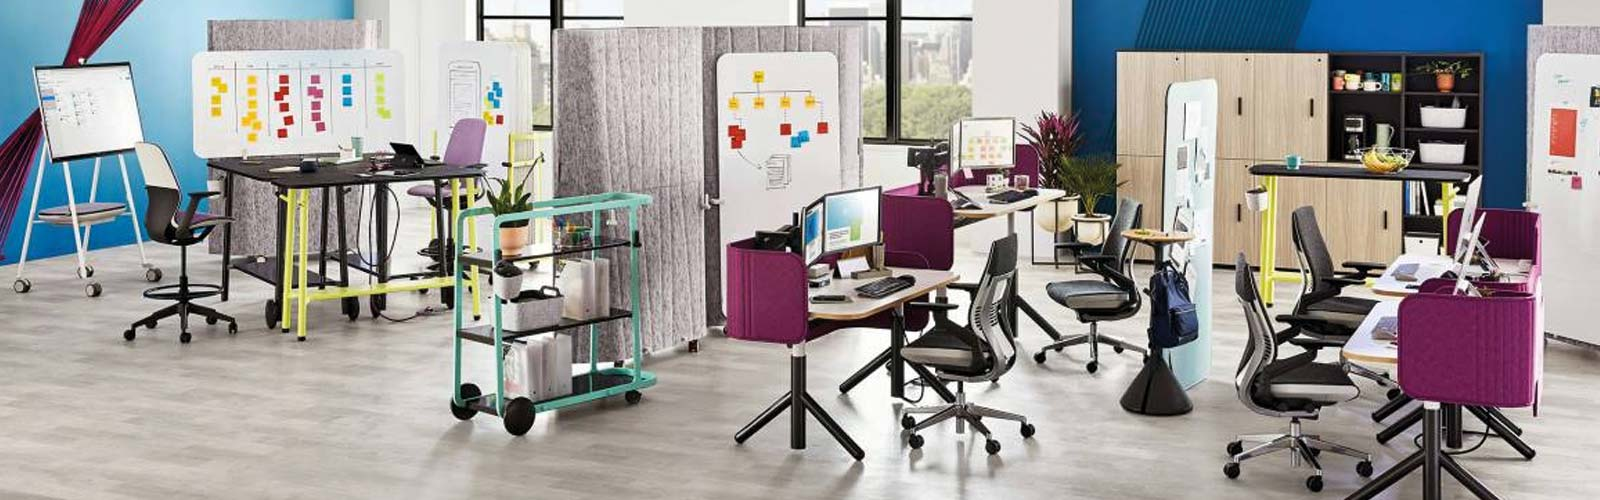 Steelcase Flex furniture